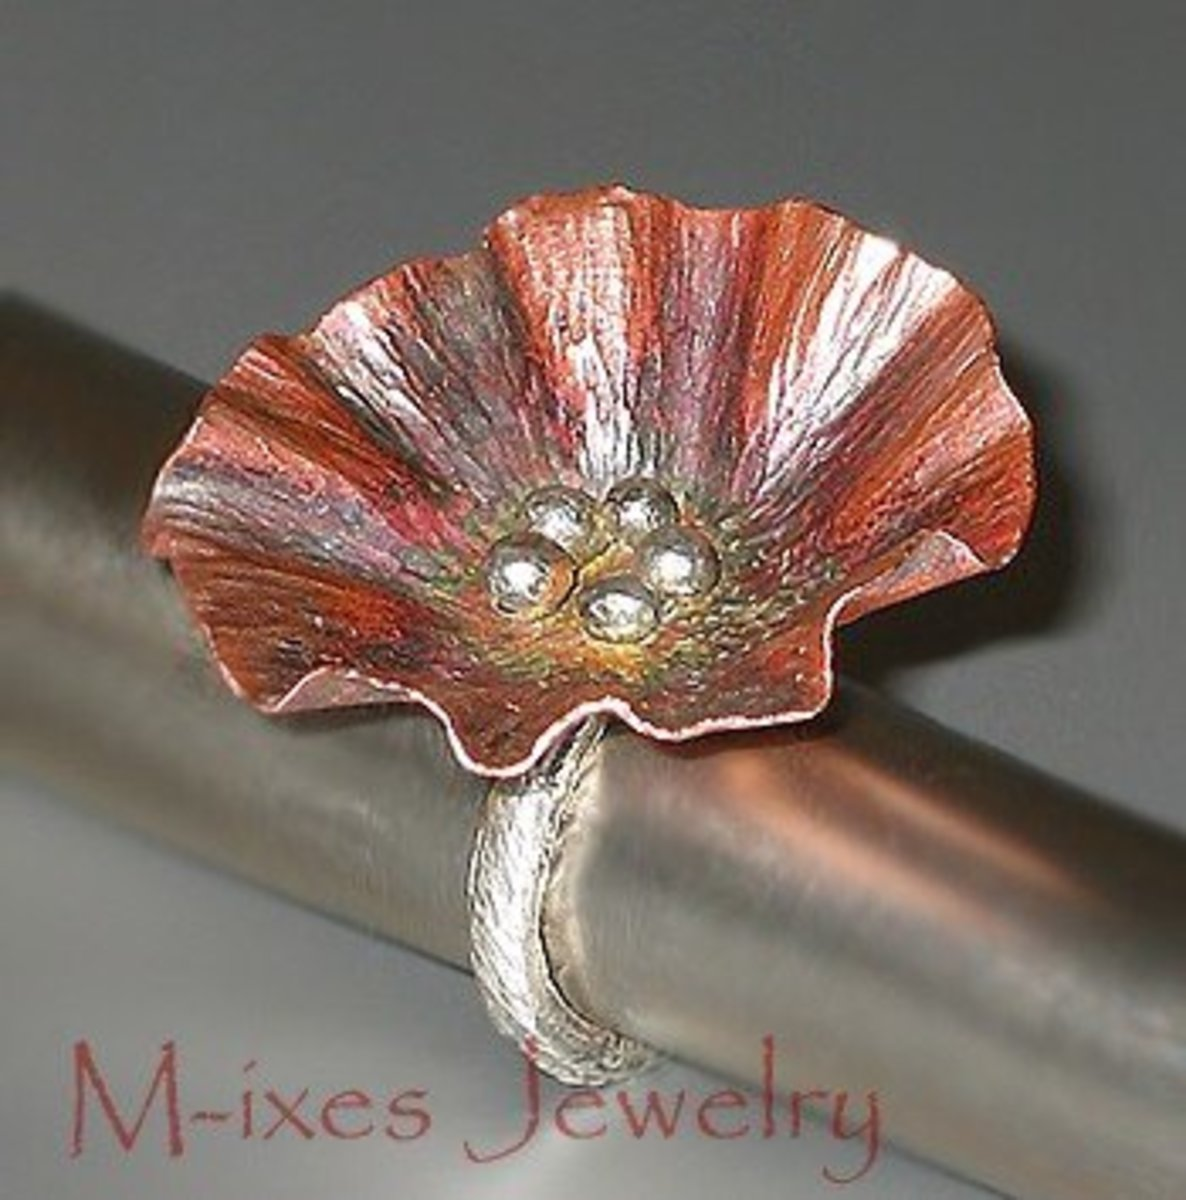 Marjorie of M-Ixes Jewelry finds Etsy a good place to sell her beautiful metalwork. (Oh and check out the banner by yours truly :P)